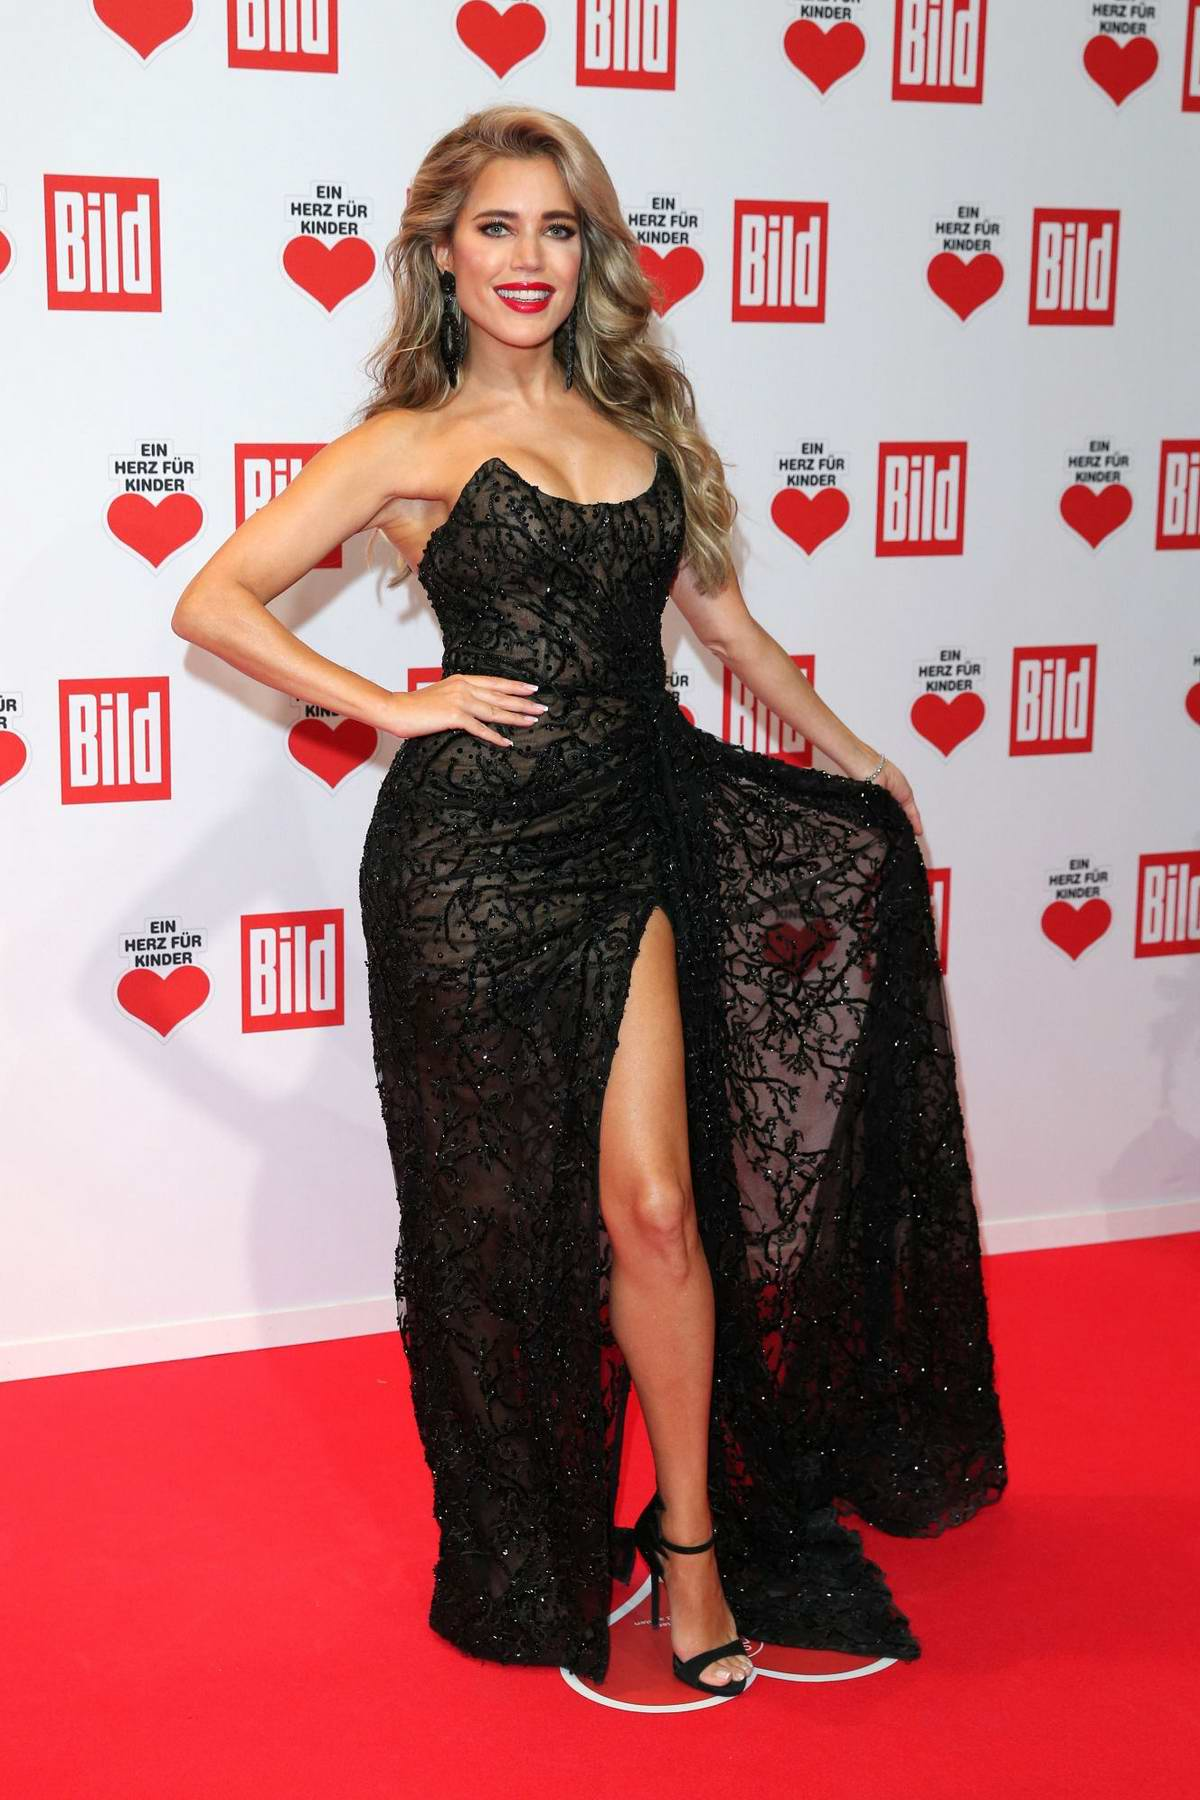 Sylvie Meis attends Ein Herz für Kinder Gala in Berlin, Germany